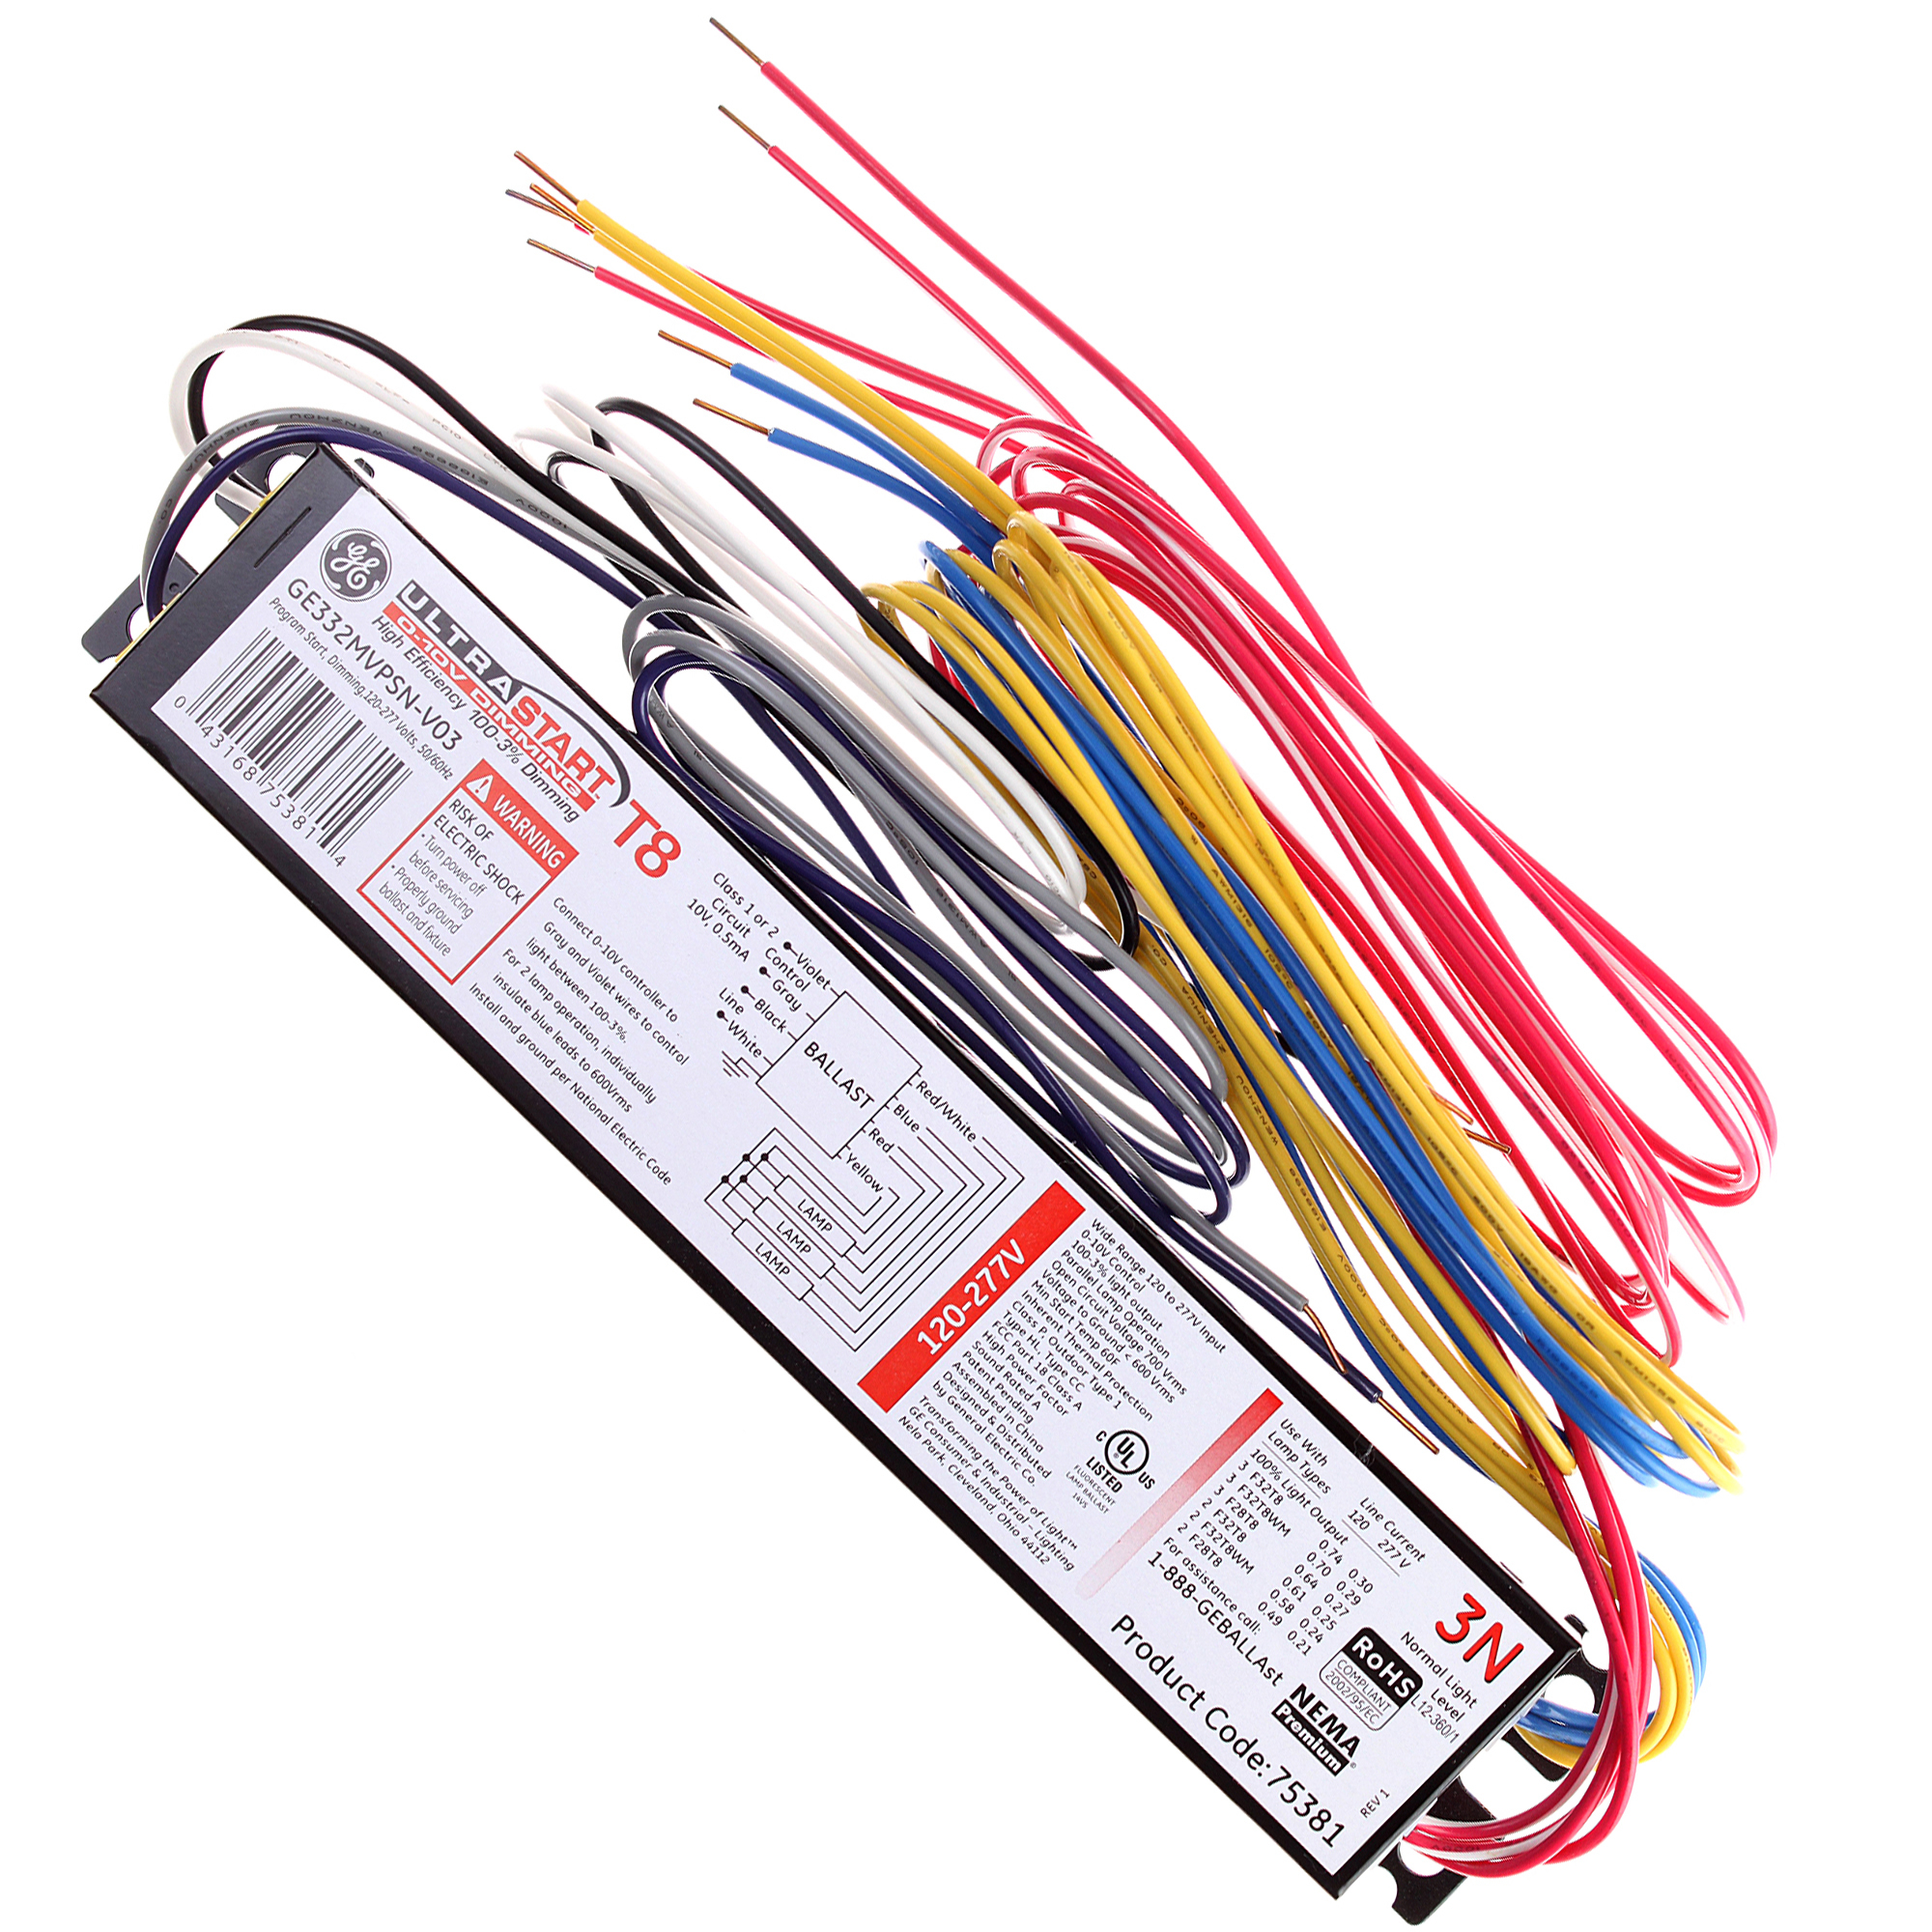 GEGE332MVPS N V03 A?resize\=665%2C665 ge proline t12 ballast wiring diagram wiring diagrams Home Electrical Wiring Diagrams at mifinder.co